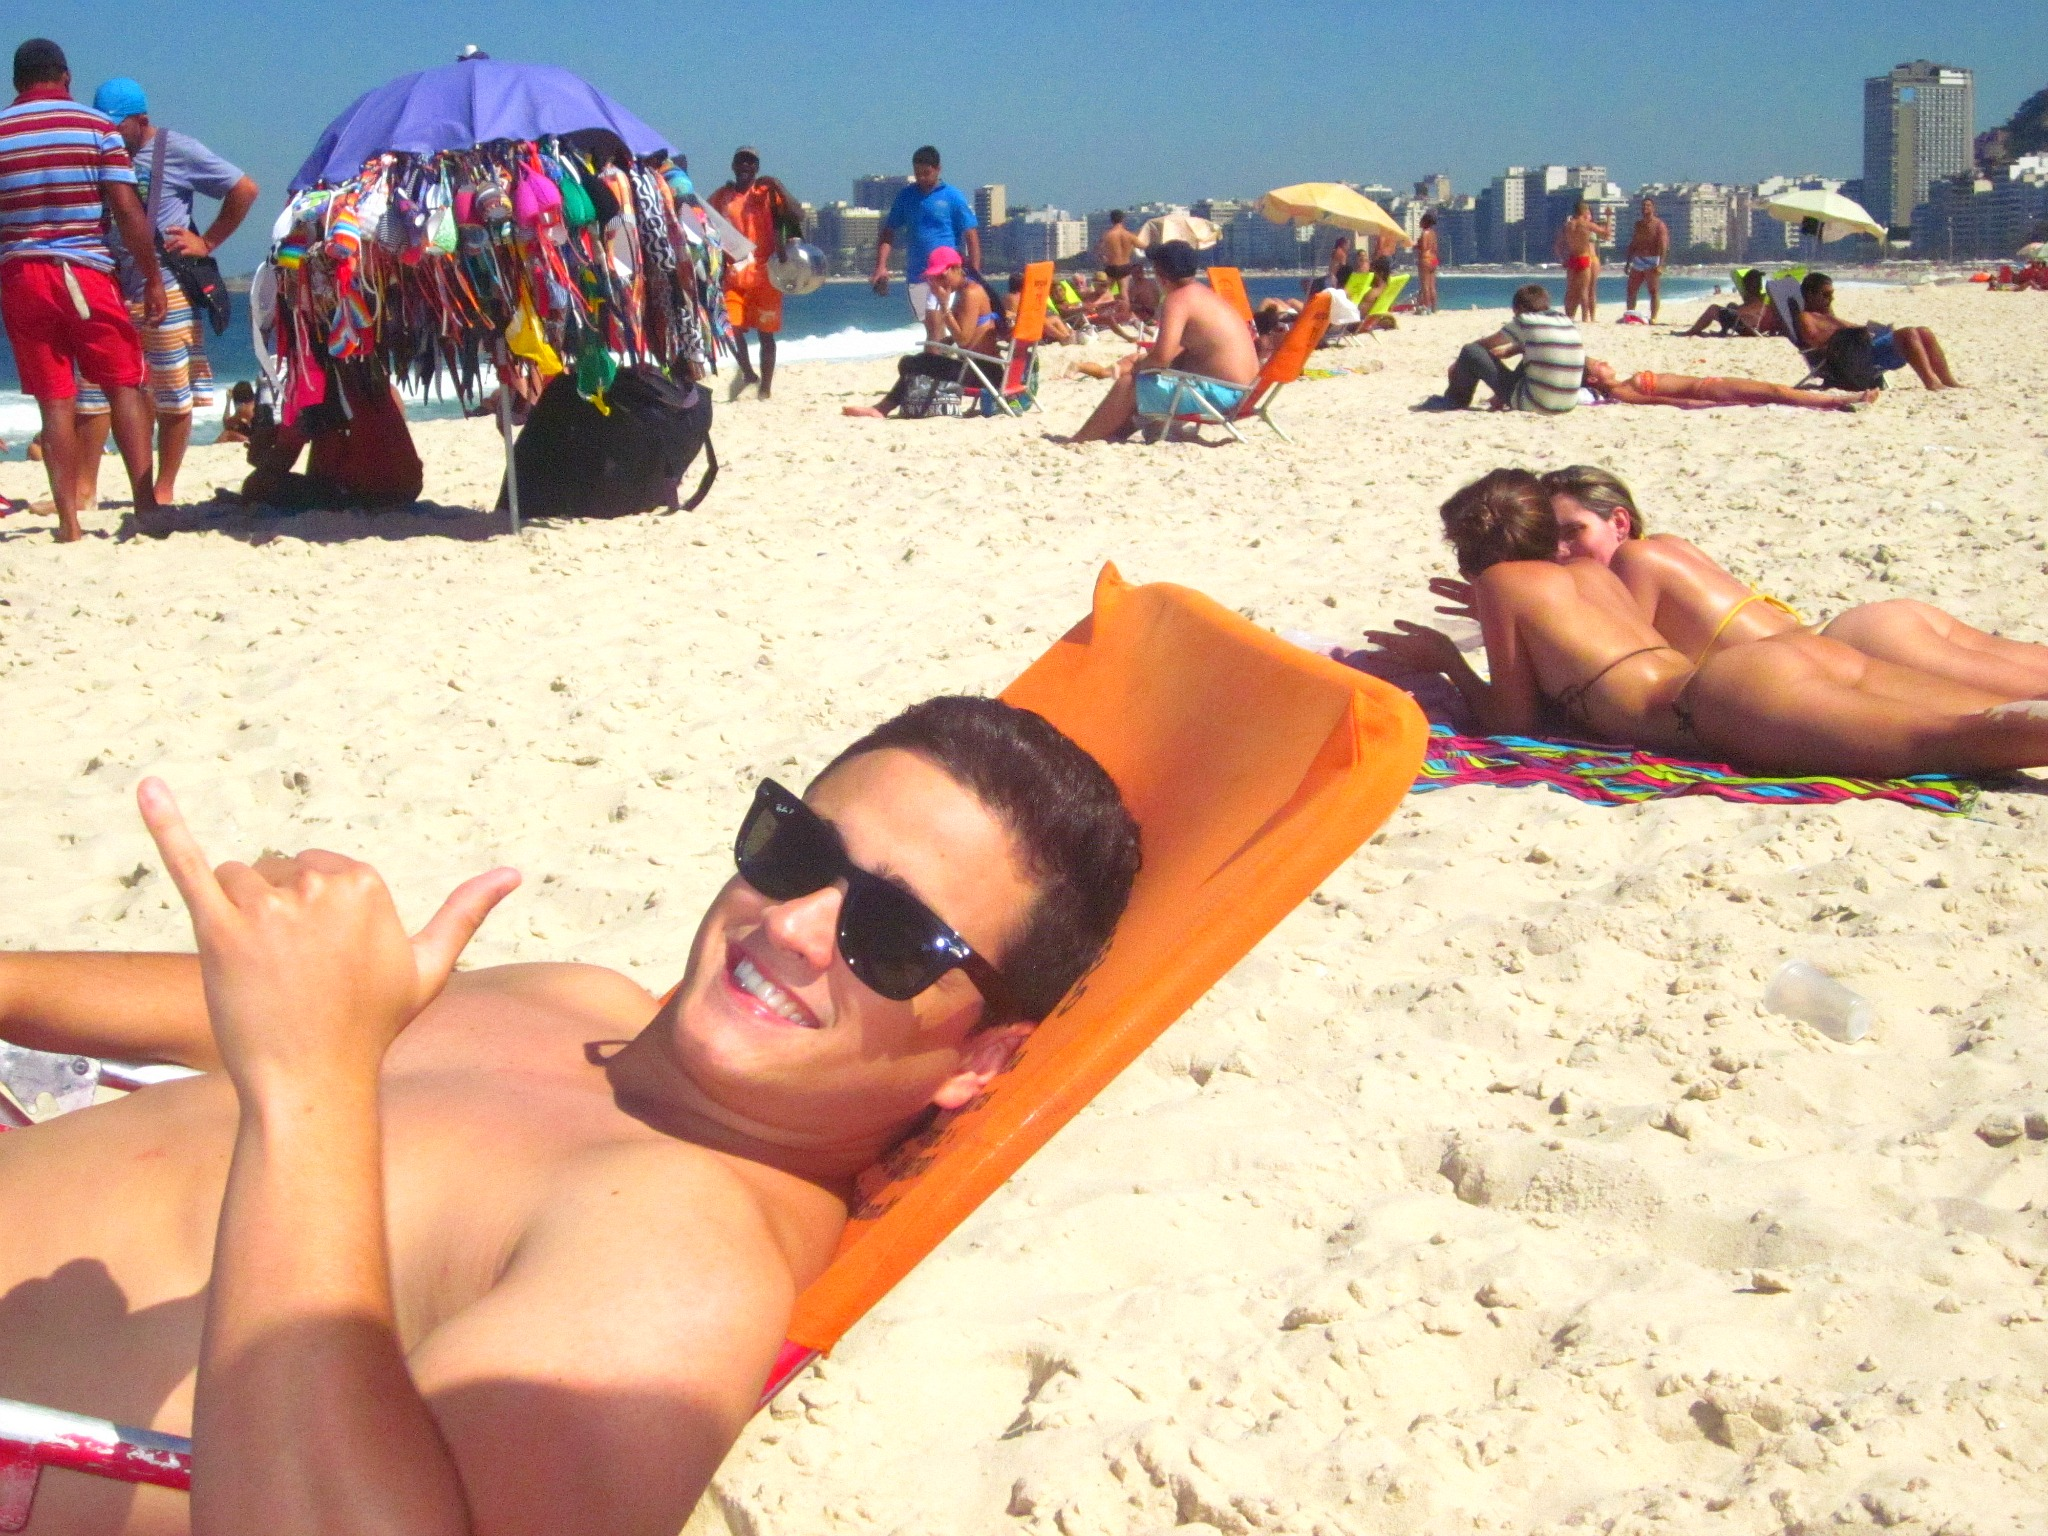 Brazilian Women – What makes them the 'Sexiest Women in the World'?